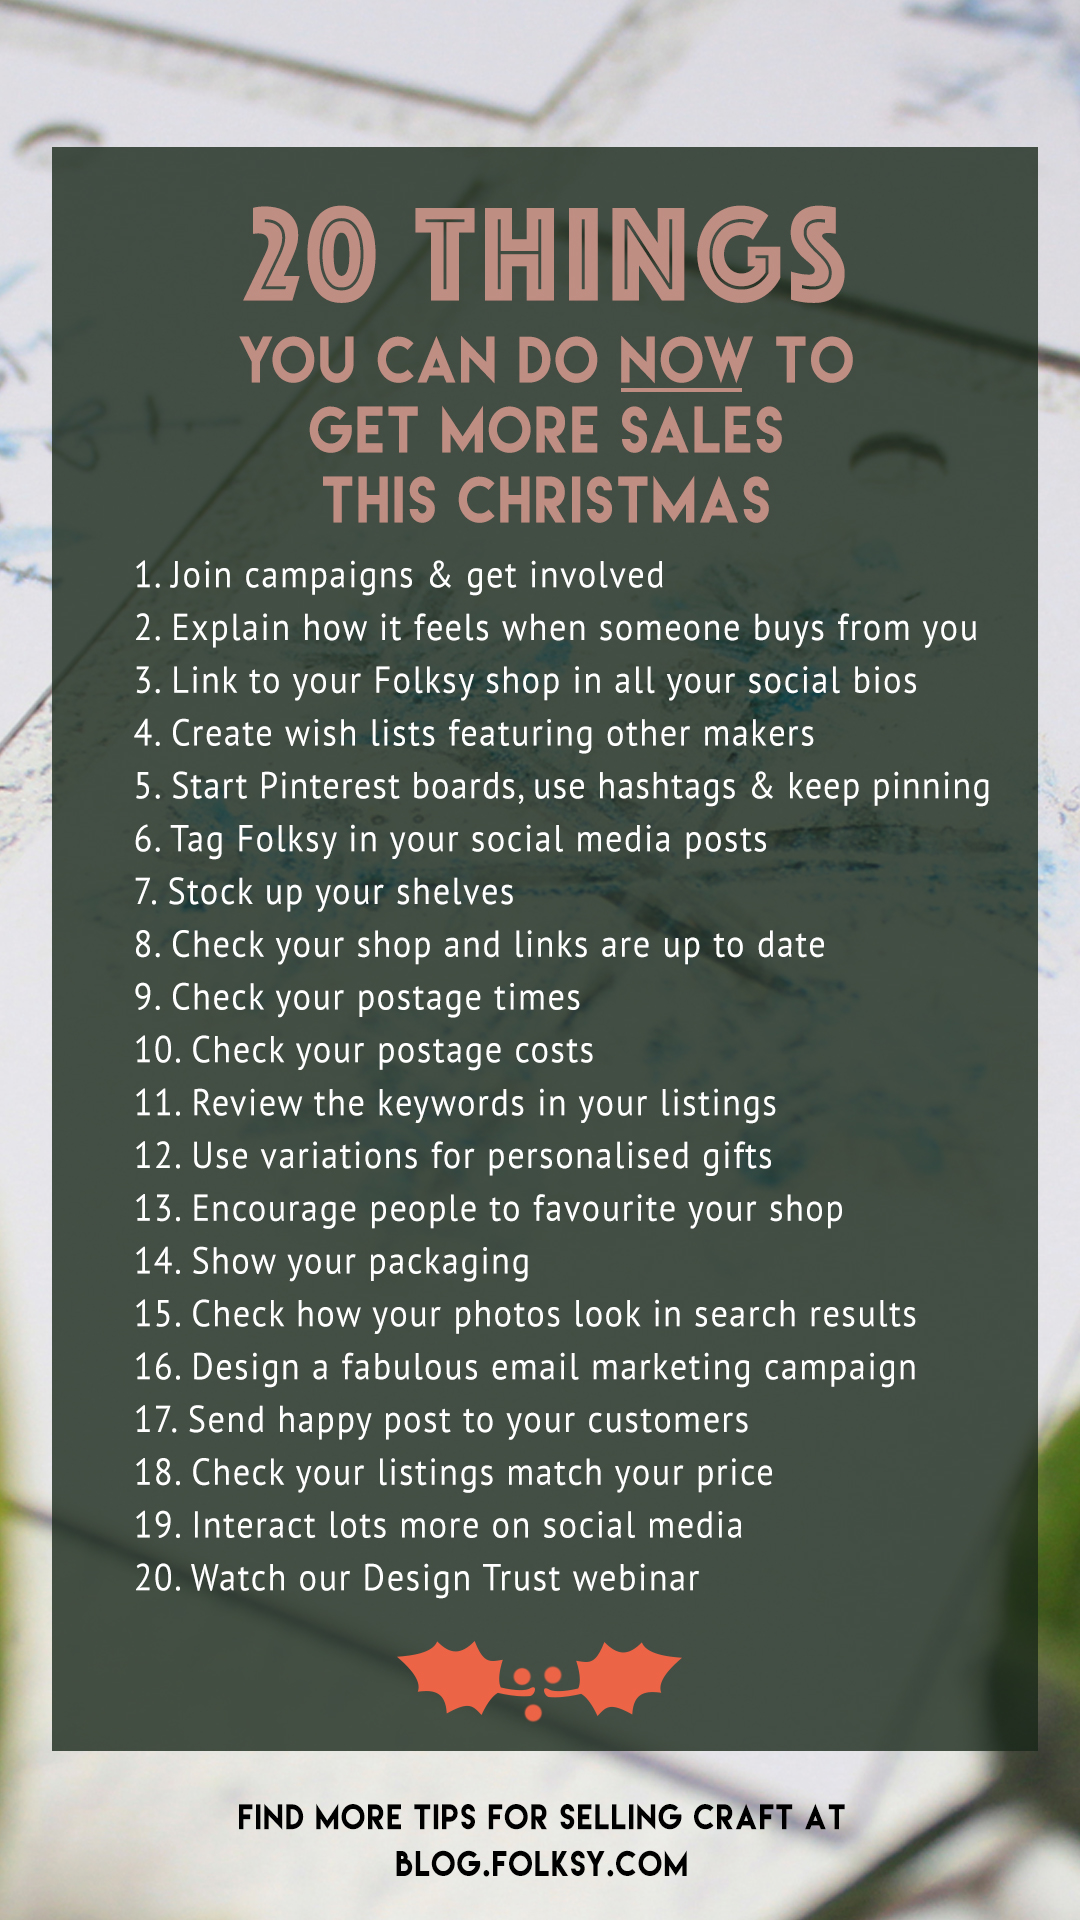 20 ways to sell more at christmas, how to sell more at christmas, marketing tips for designers and makers,